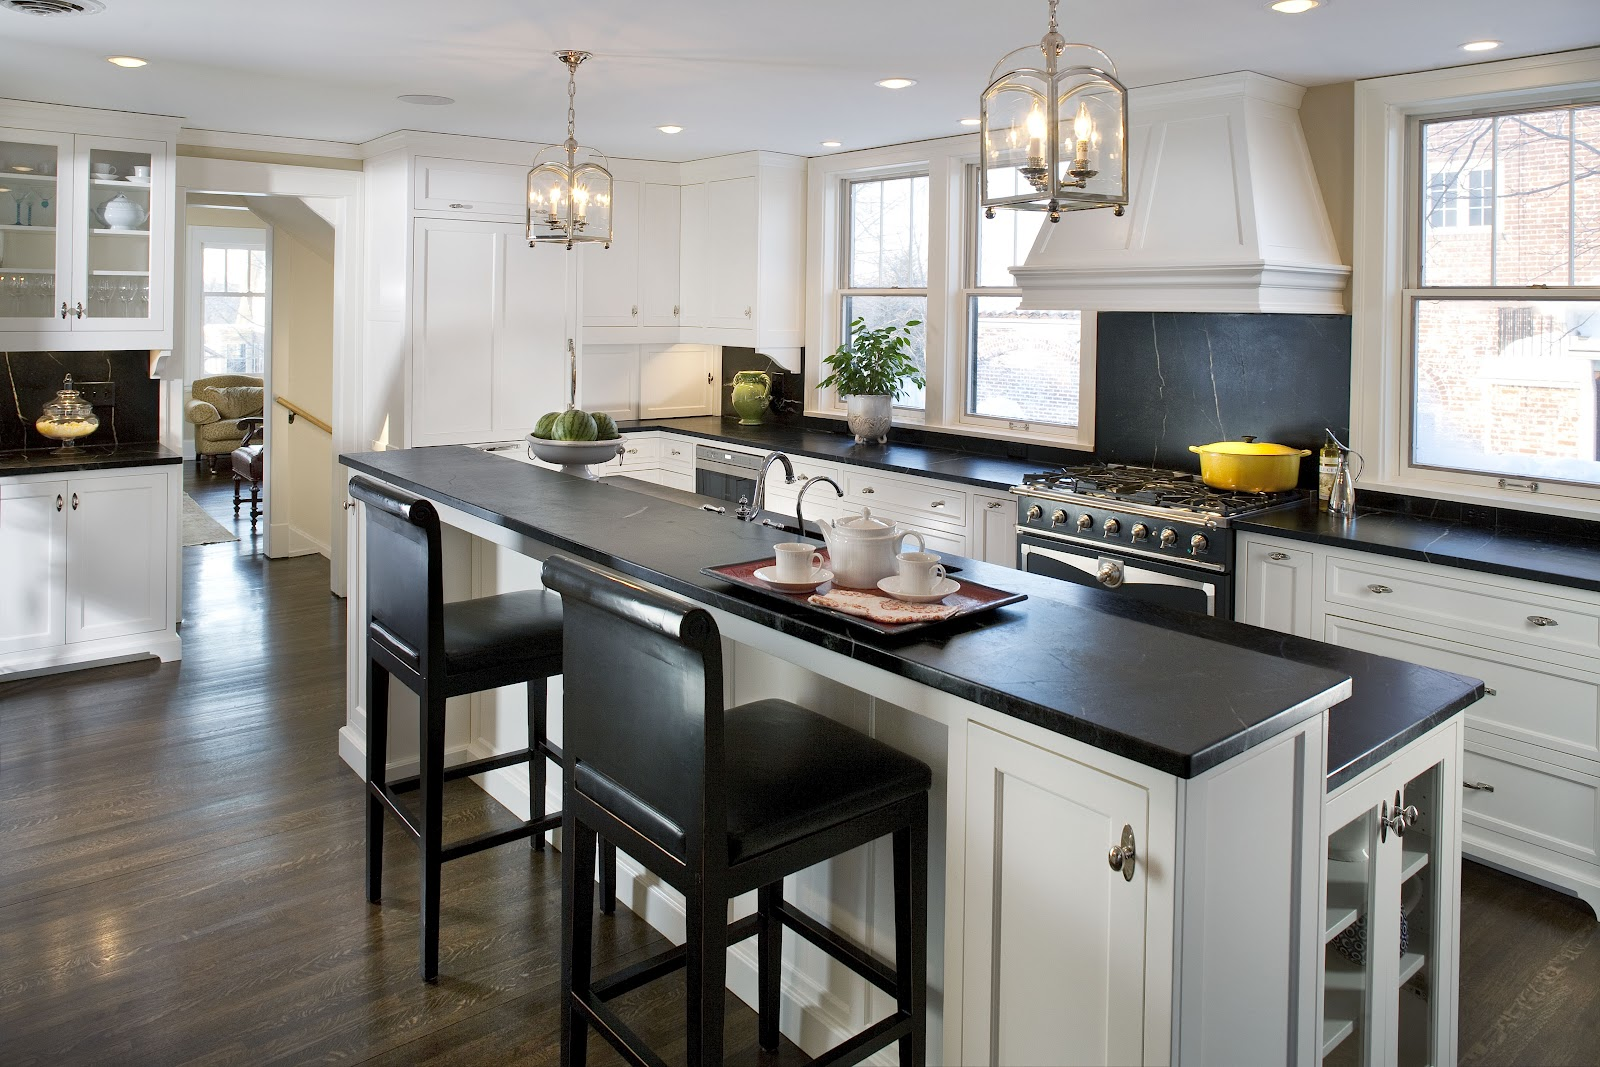 Are Soapstone Countertops Durable The Quick 411 On Soapstone Countertops